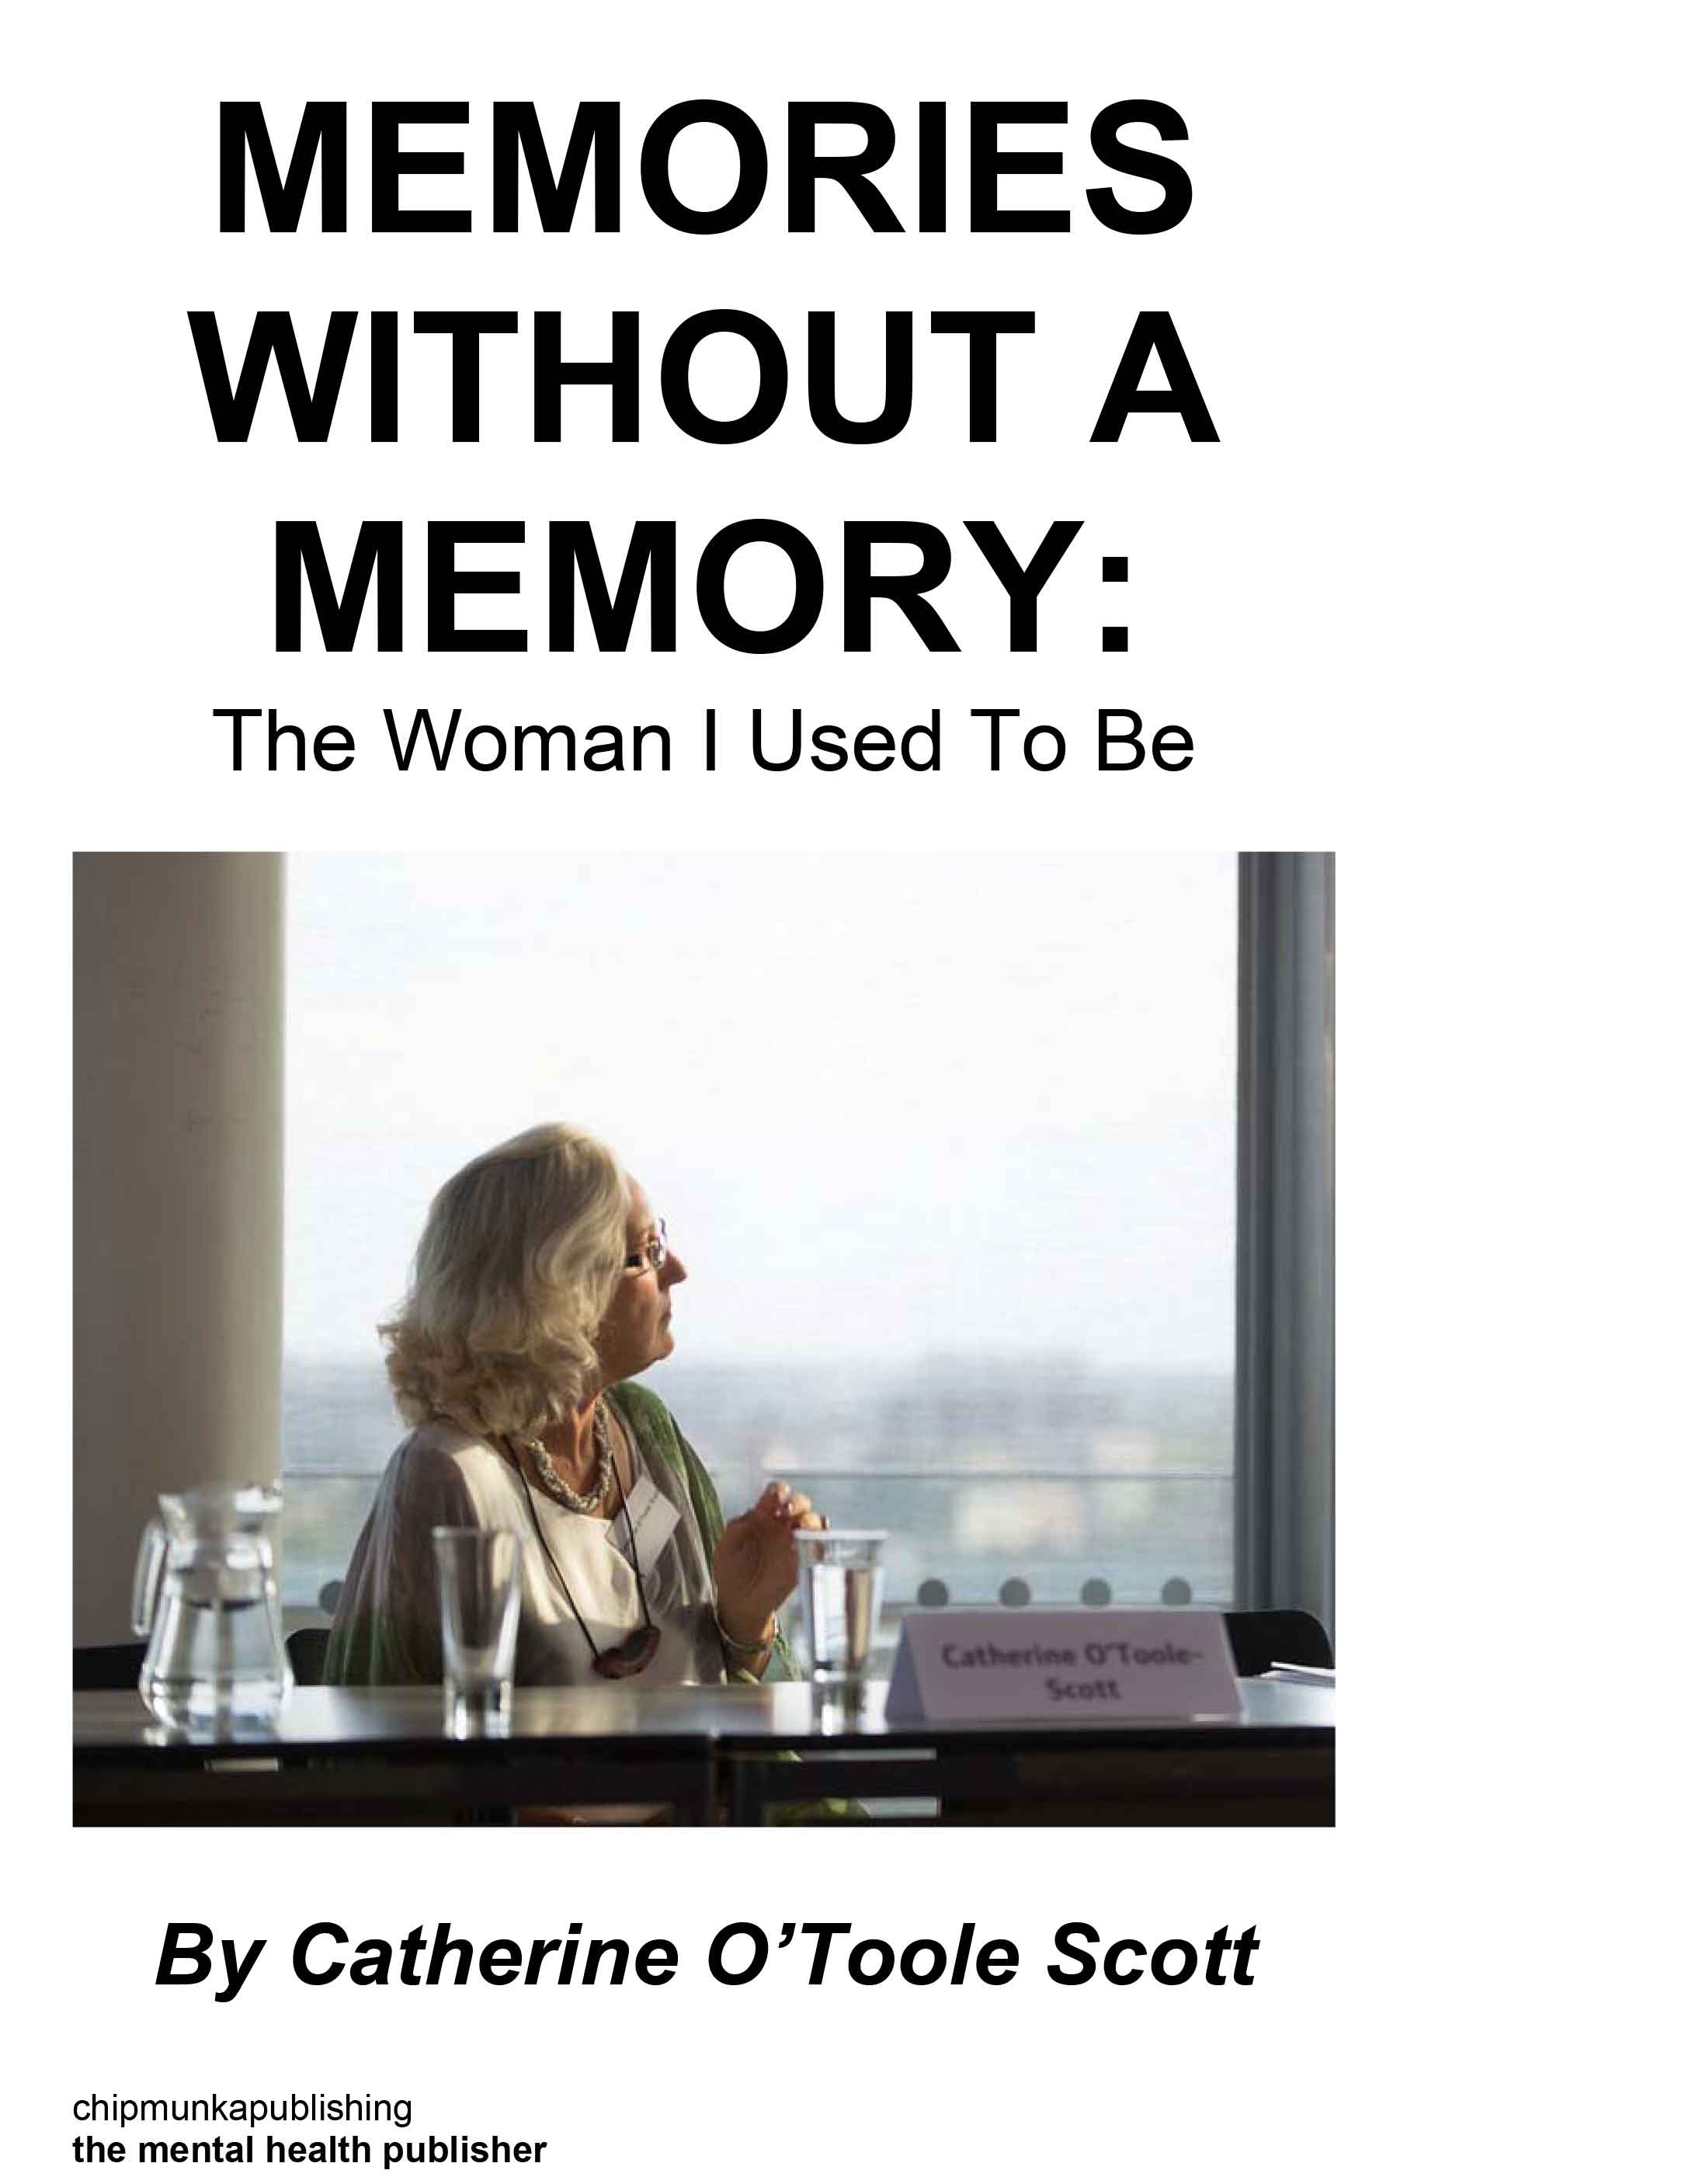 memories without a memory ebook 5 00 chipmunkapublishing co